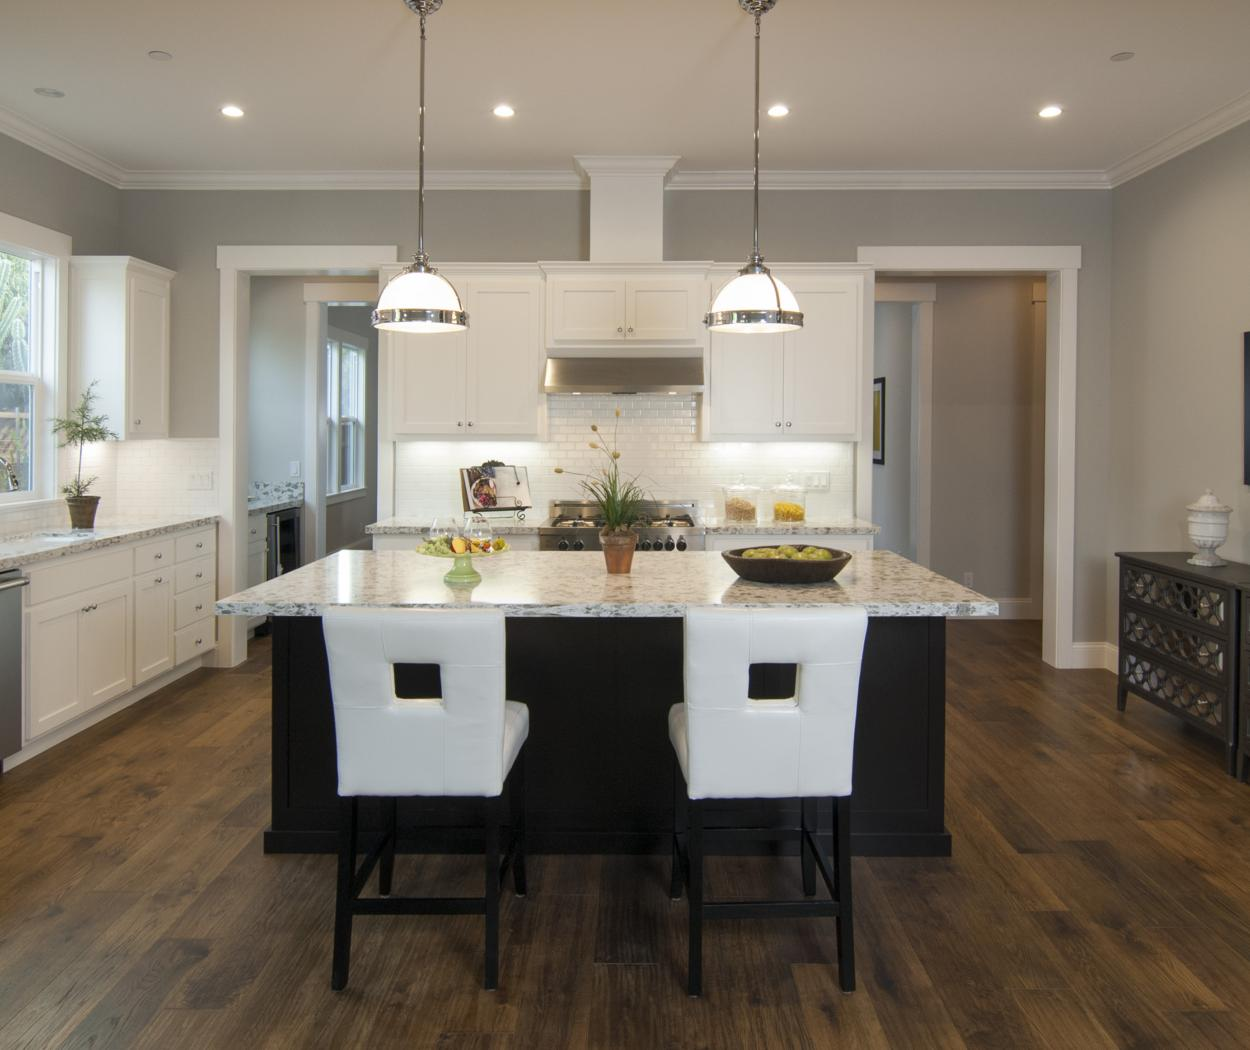 Transitional Shaker Style Kitchen with a Beautiful Espresso Stained Island and Stainless Steel Appliances